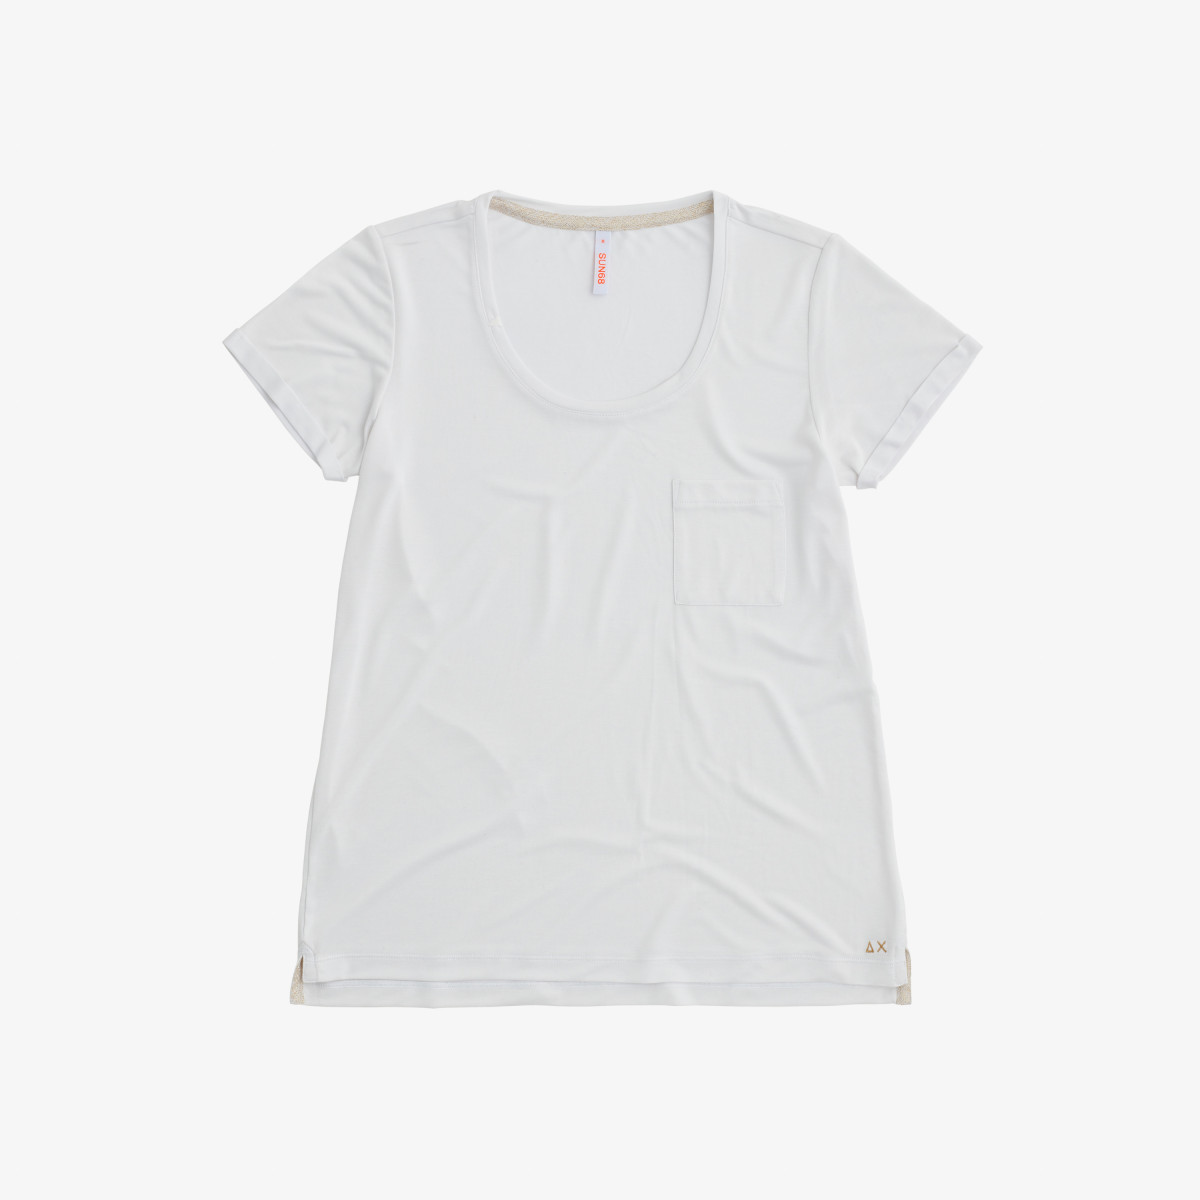 ROUND NECK T-SHIRT CHEST POCKET S/S BIANCO